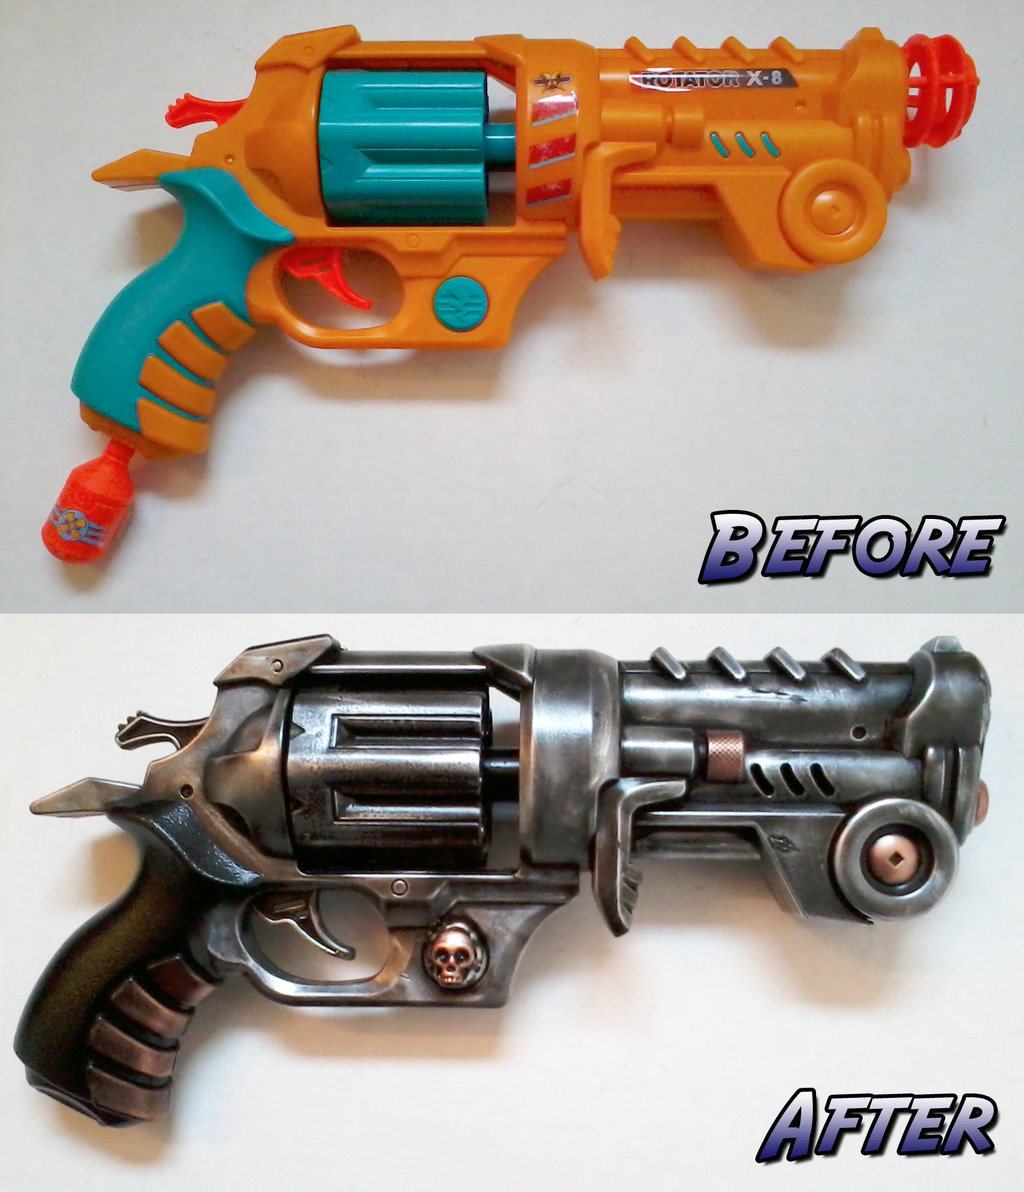 Getting NERFed: examples of toy guns turned into cool LARP ...